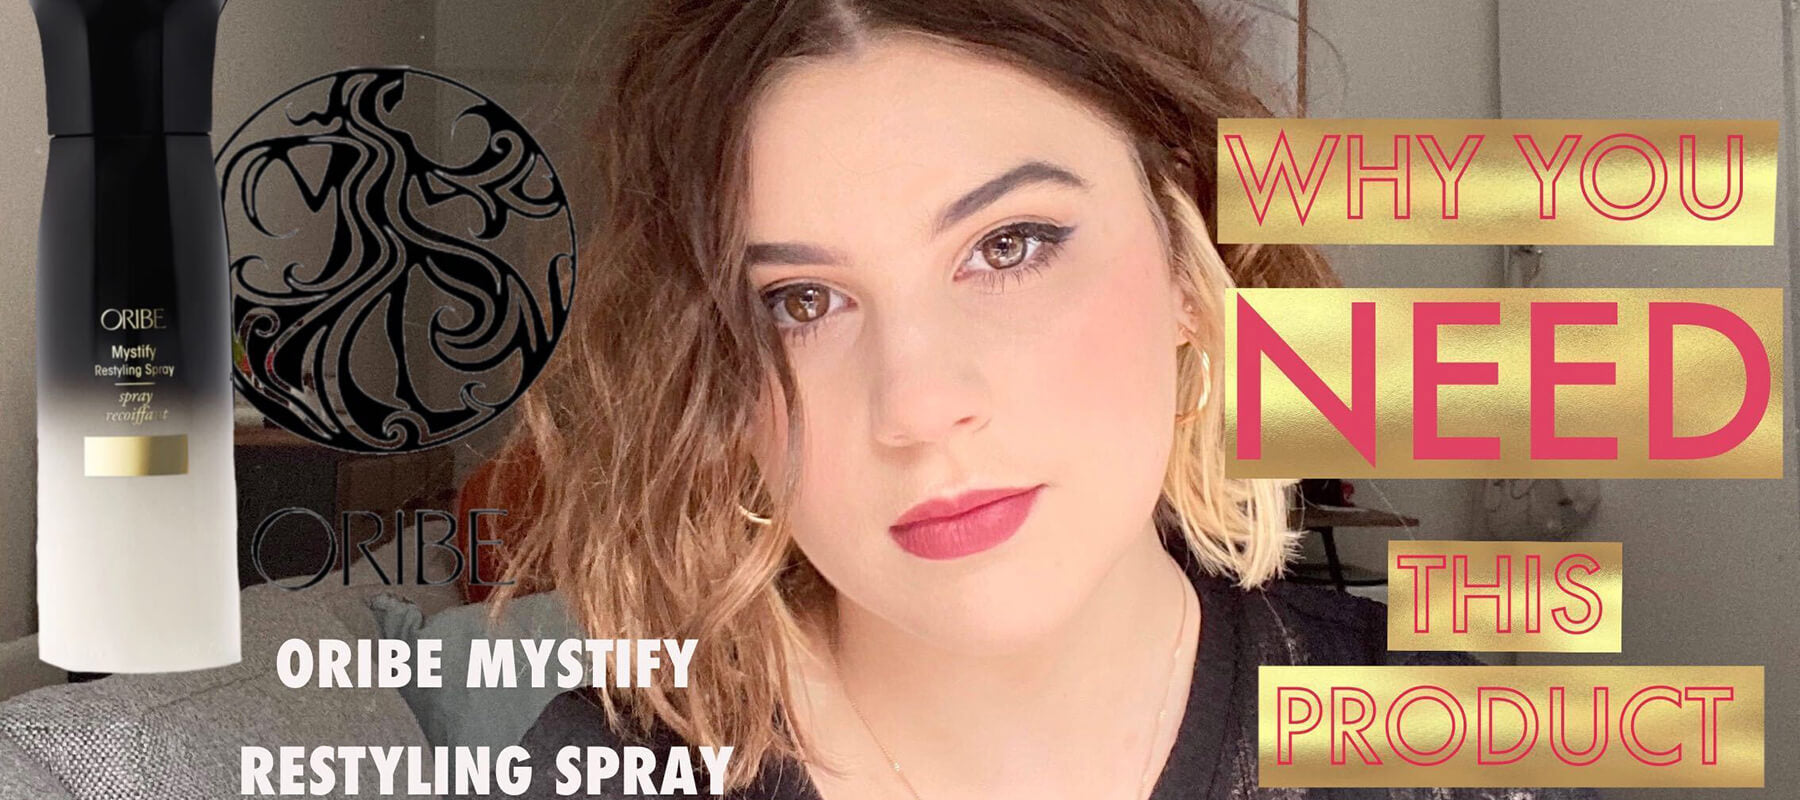 Oribe Mystify Restyling Spray Review in text over collage